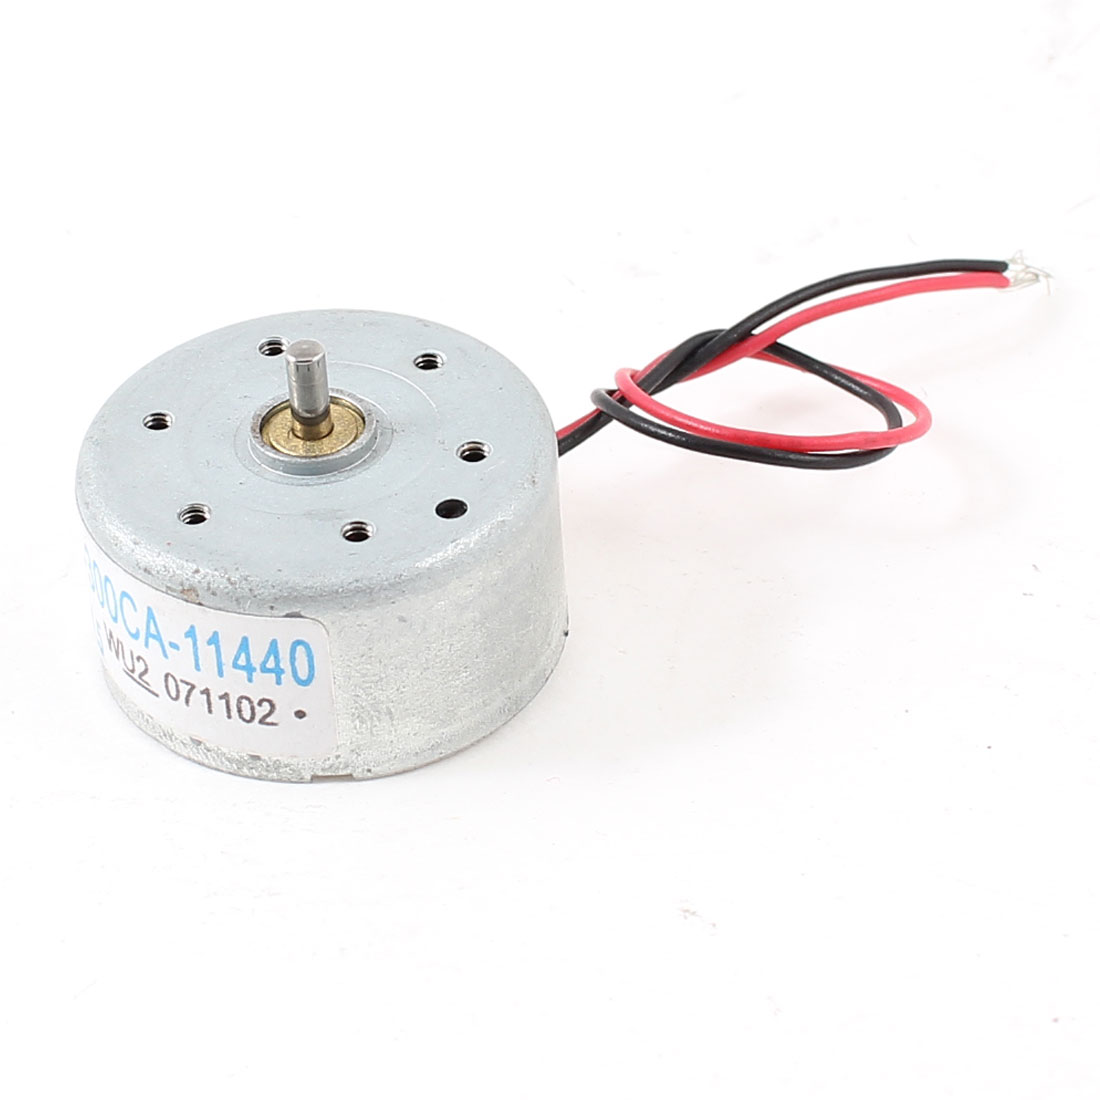 Silver Tone Two Wired 1860-7570RPM 2mm Shaft High Torque Motor DC 1.5-6V for Solar Power